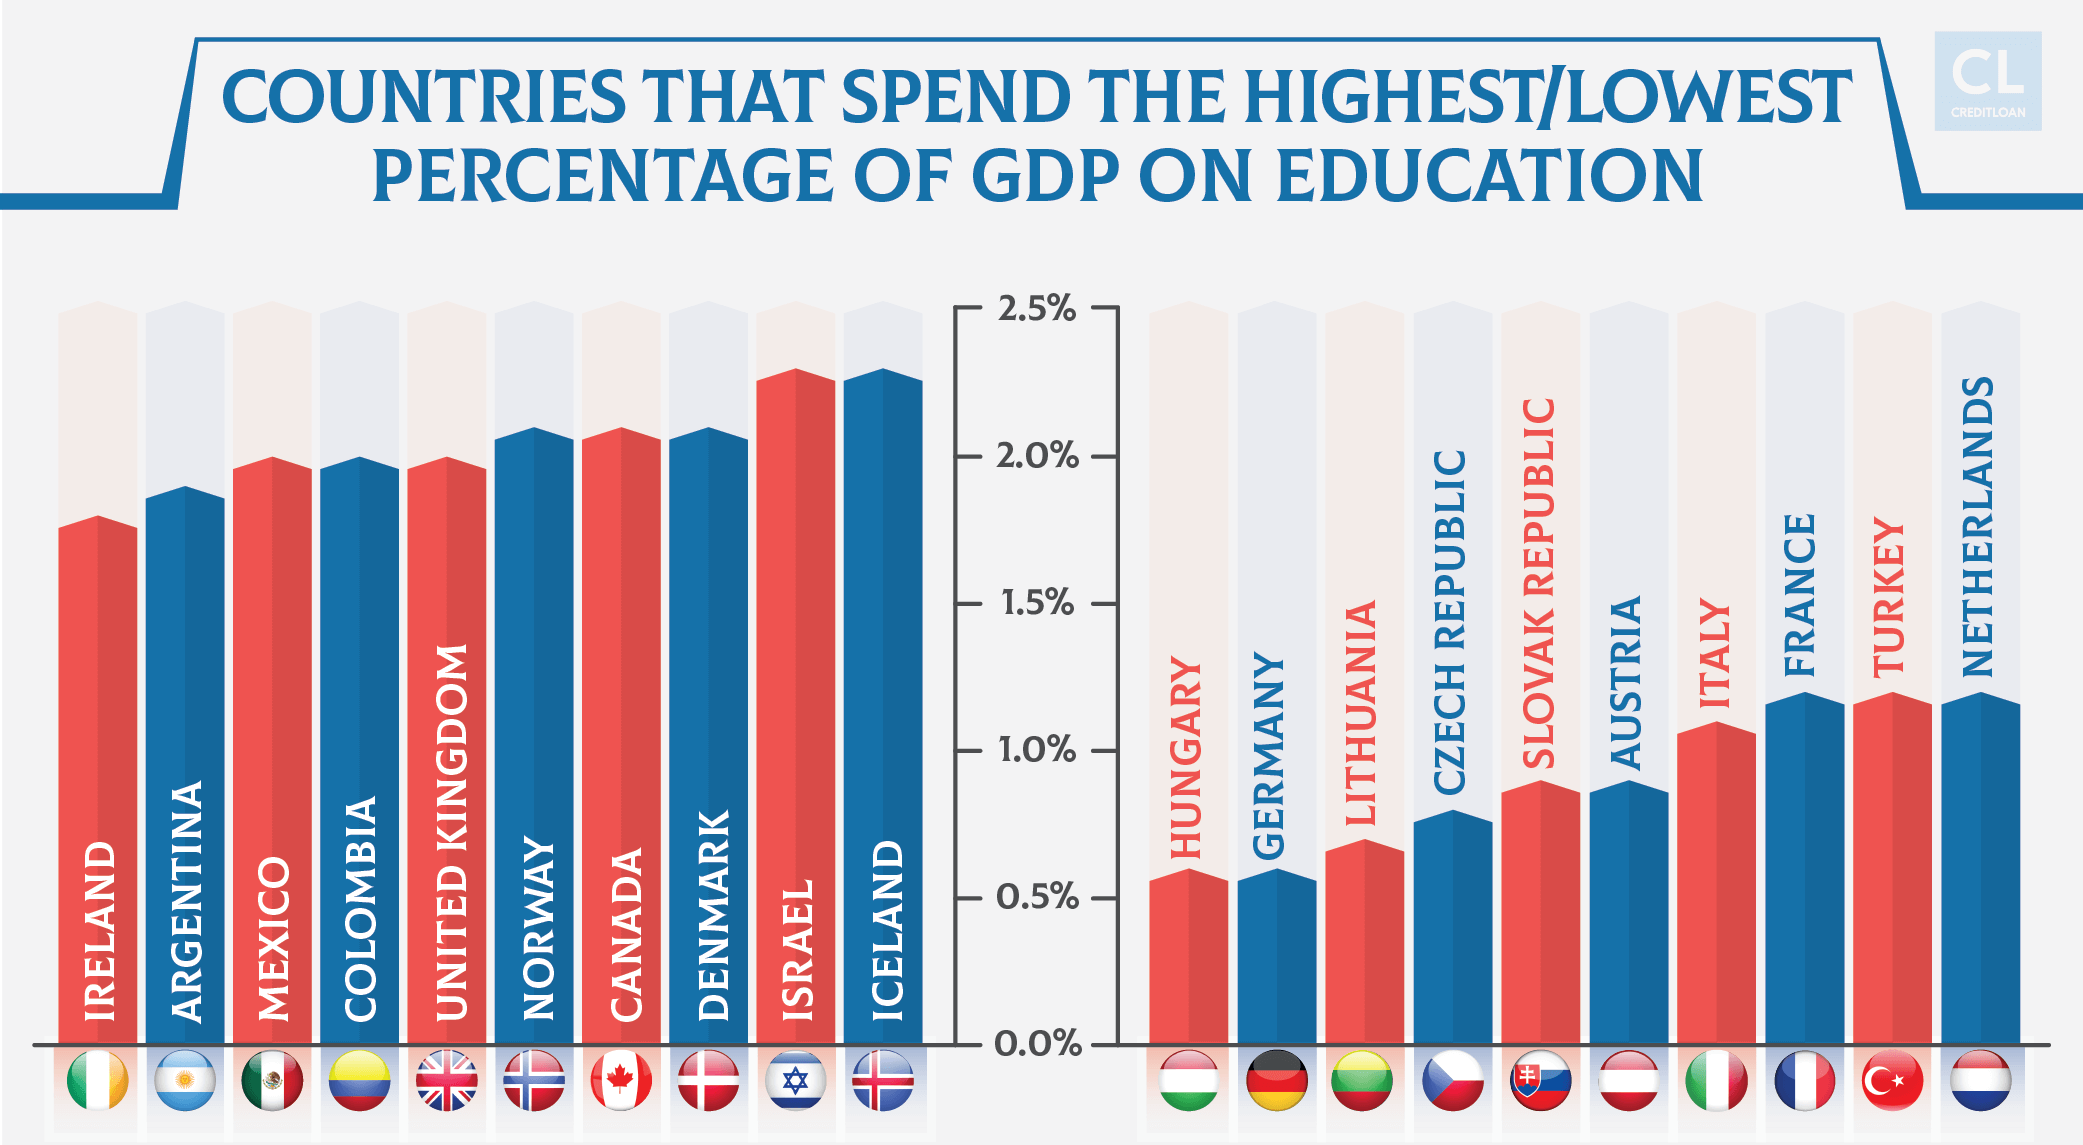 Countries that Spend the Highest and Lowest Percentage of GDP on Education